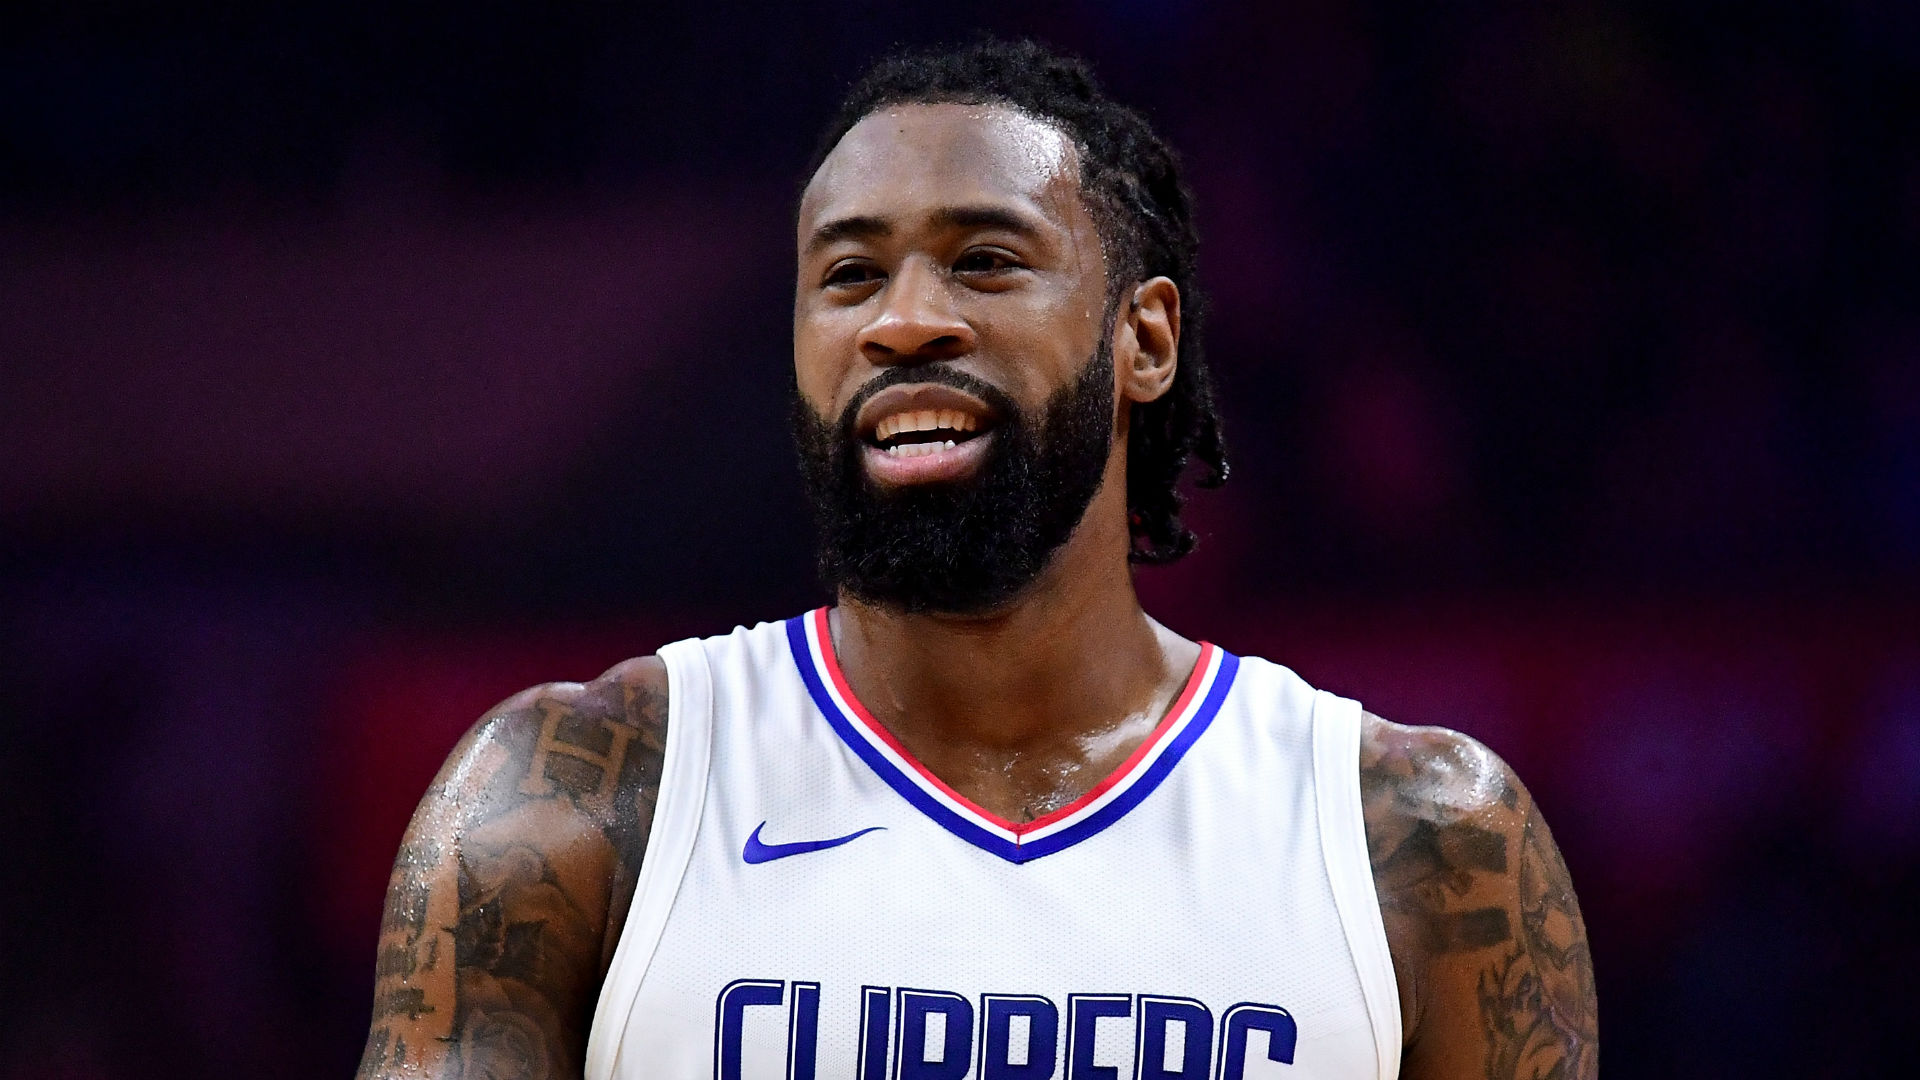 DeAndre Jordan to sign with Mavericks